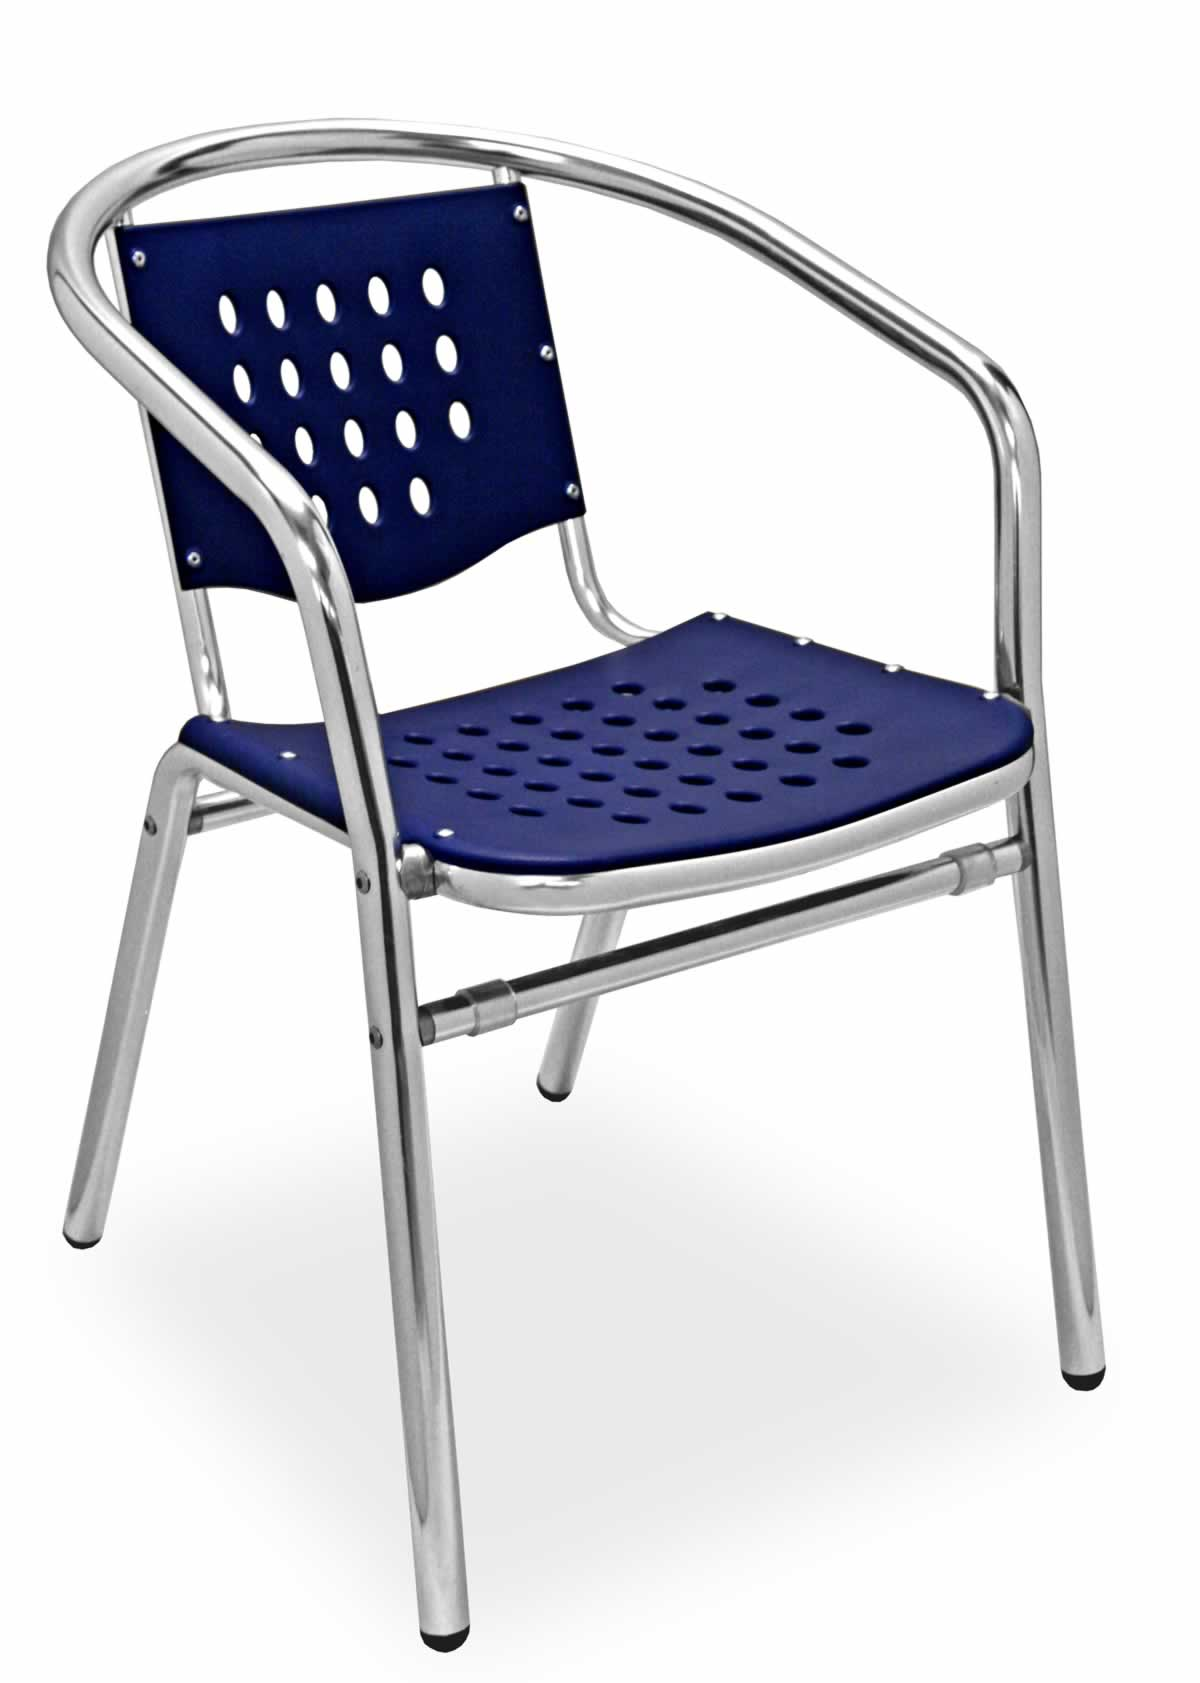 Aluminum Chairs Aluminum Frame Plastic Seat Arm Chair Sa03c Commercial